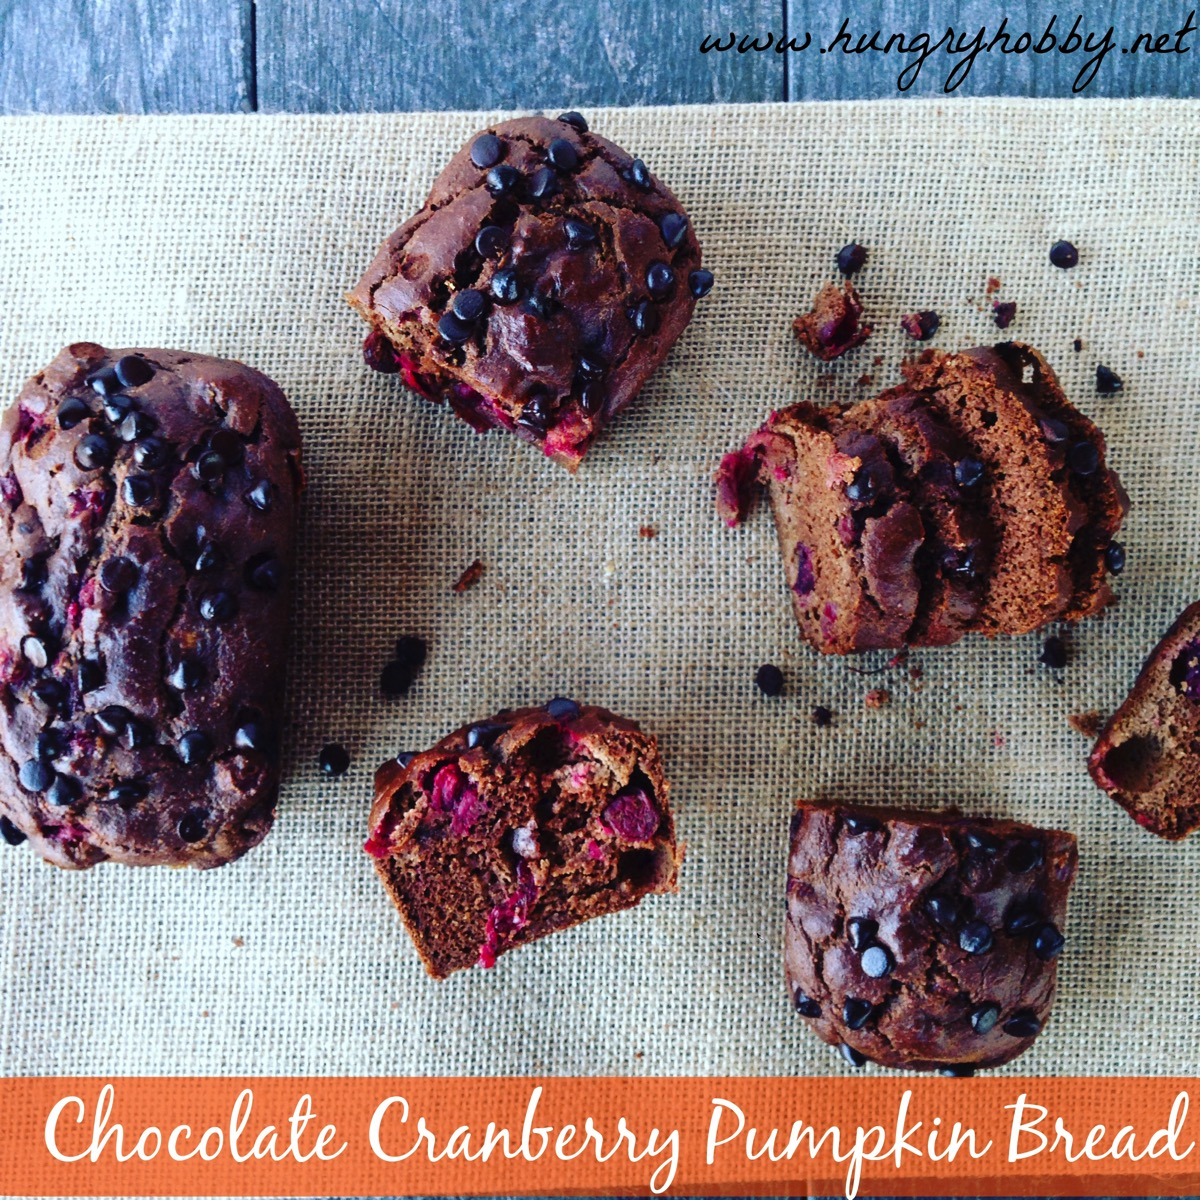 Chocolate cranberry pumpkin bread